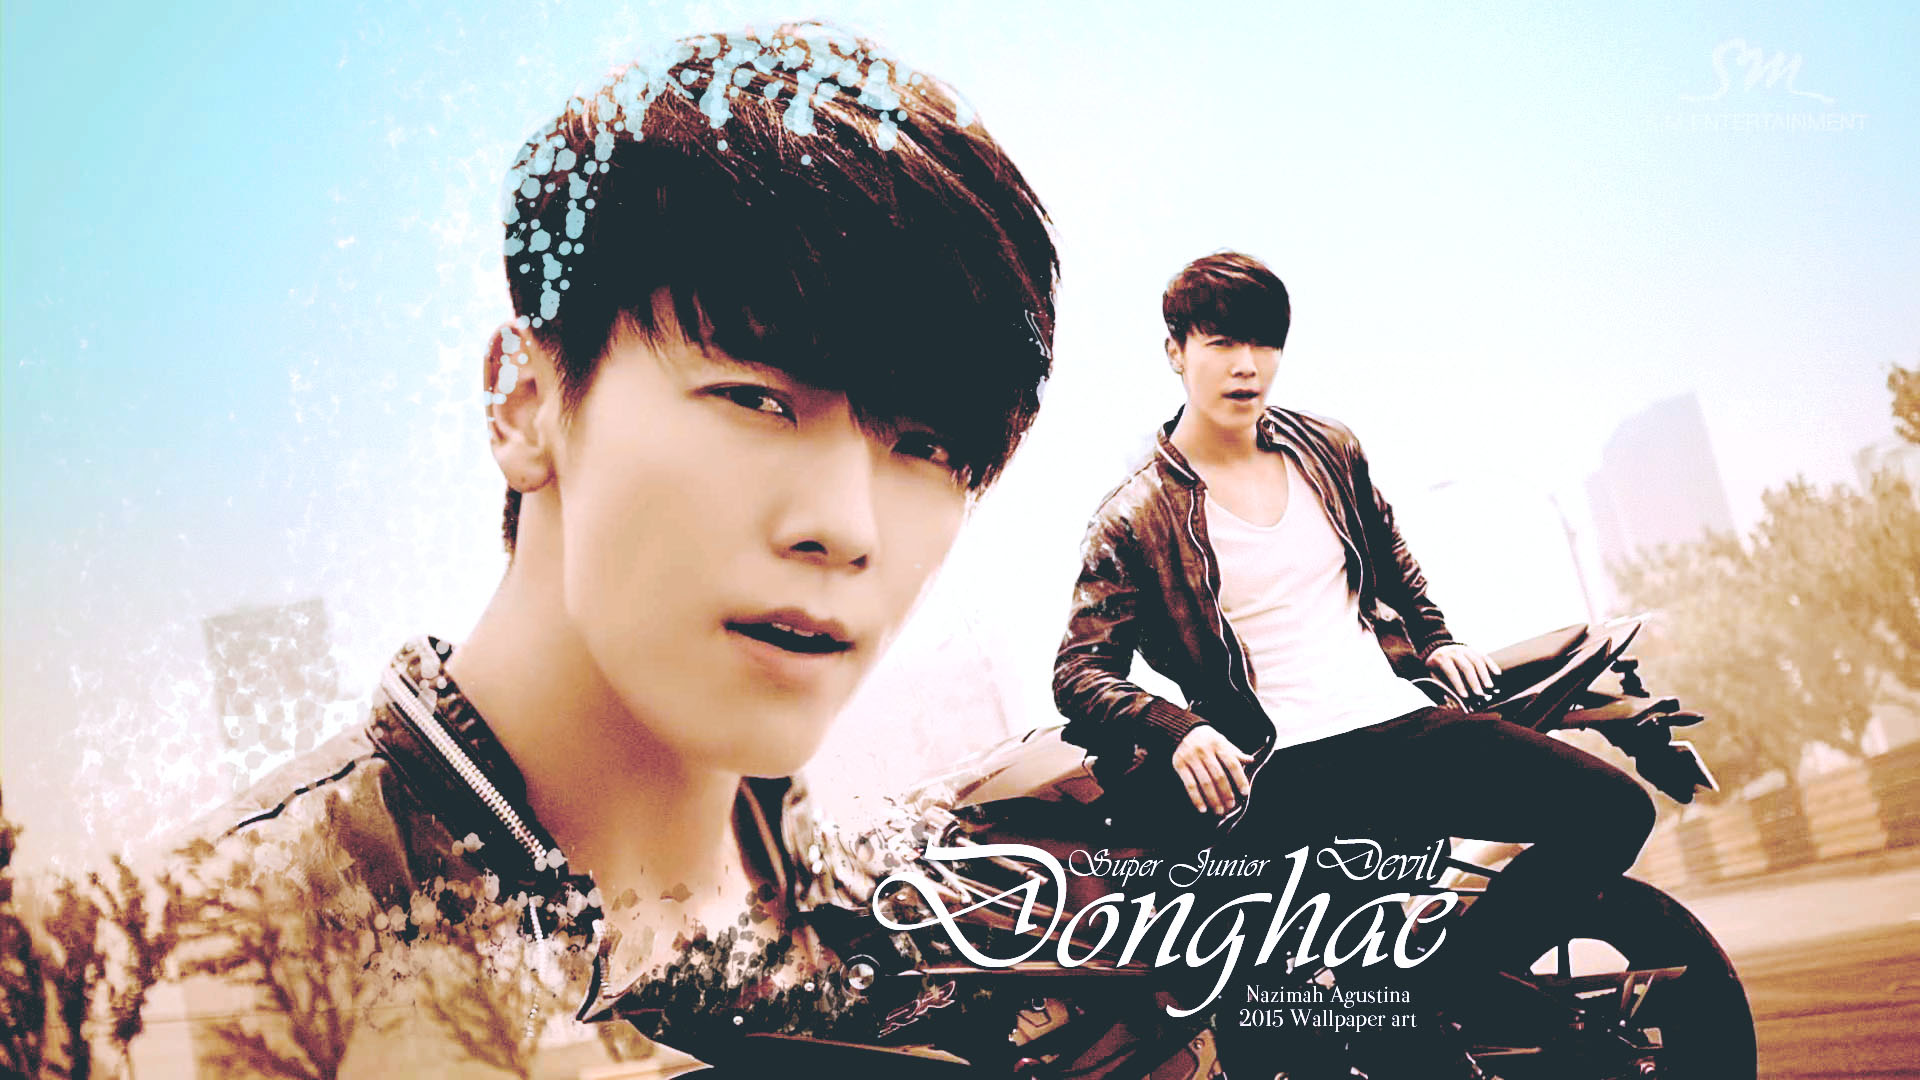 devil donghae mv super junior wallpaper by nazimah agustina art 201